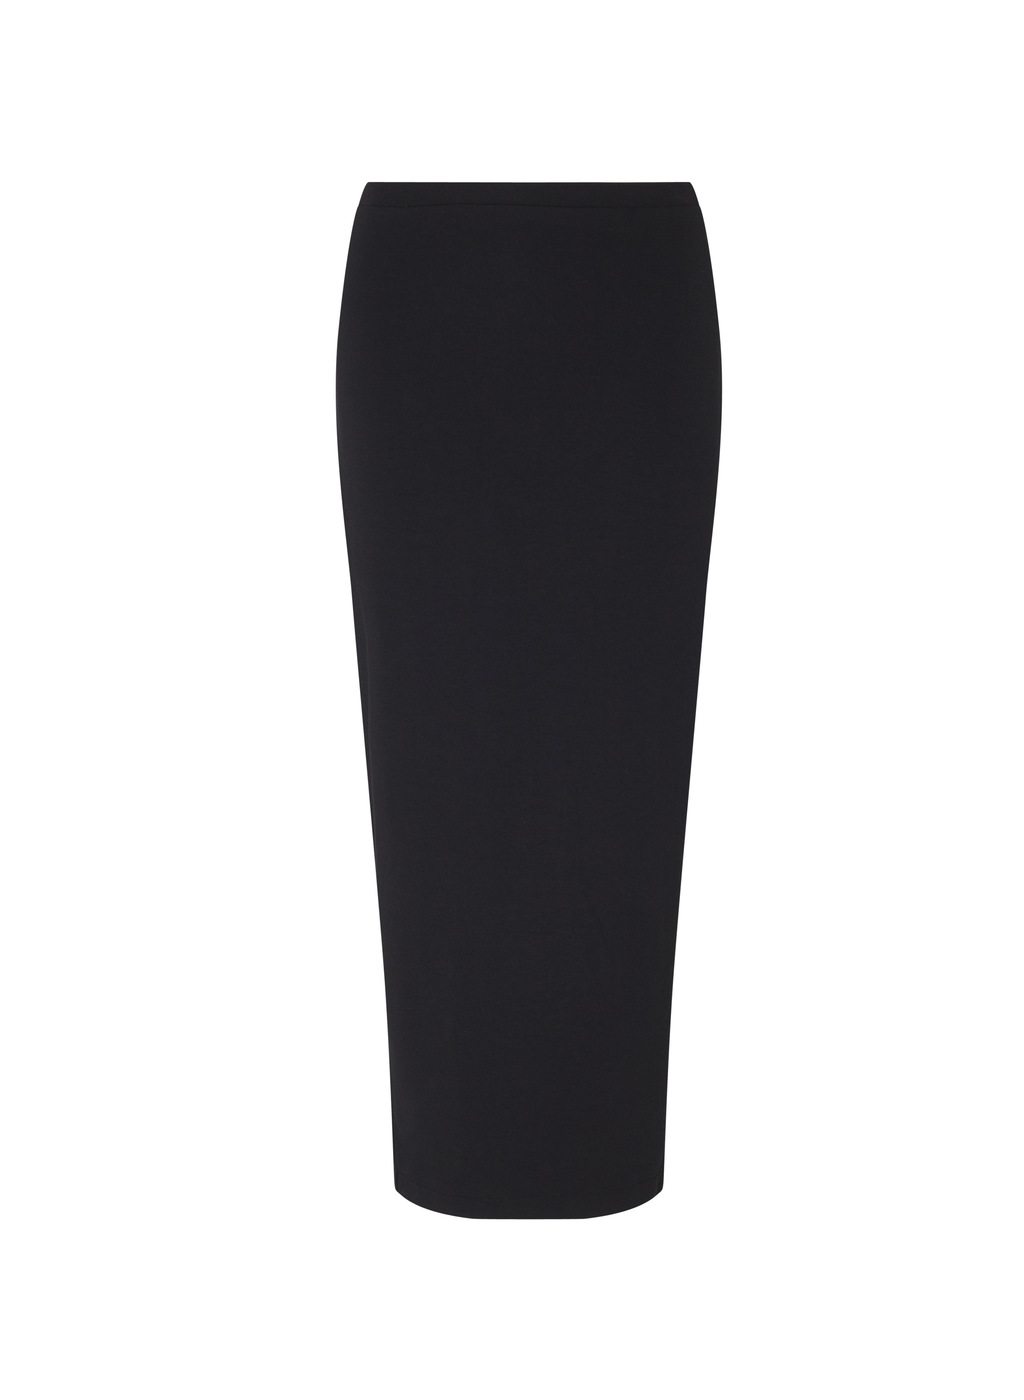 Womenswear Reeves Maxi Skirt - pattern: plain; length: ankle length; fit: body skimming; waist: high rise; predominant colour: black; occasions: casual; style: maxi skirt; fibres: polyester/polyamide - stretch; texture group: jersey - clingy; pattern type: fabric; wardrobe: basic; season: a/w 2016